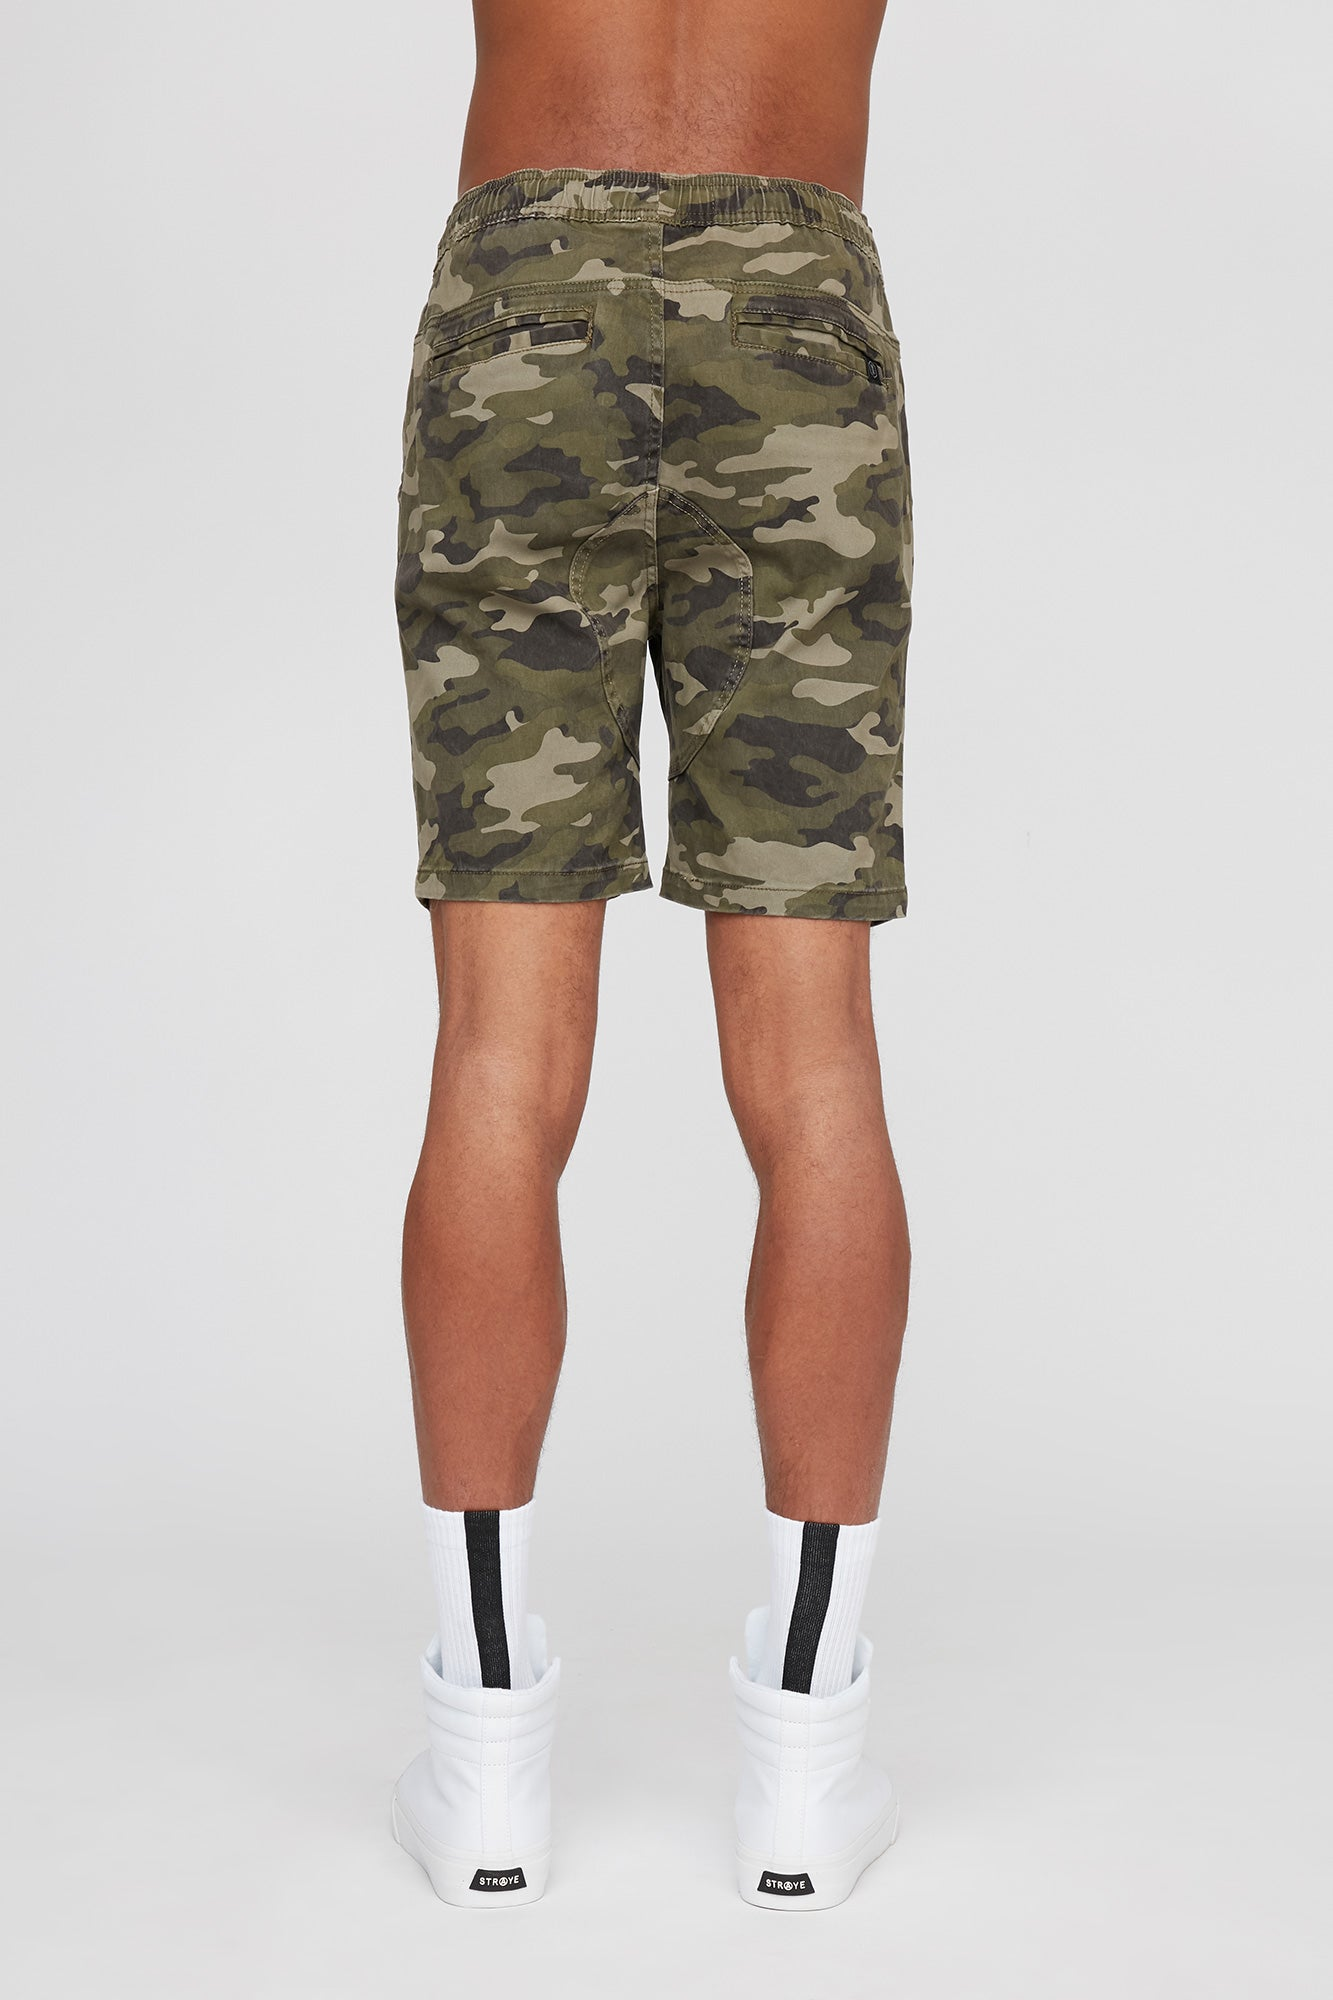 West 49 Guys Camouflage Gusset Jogger